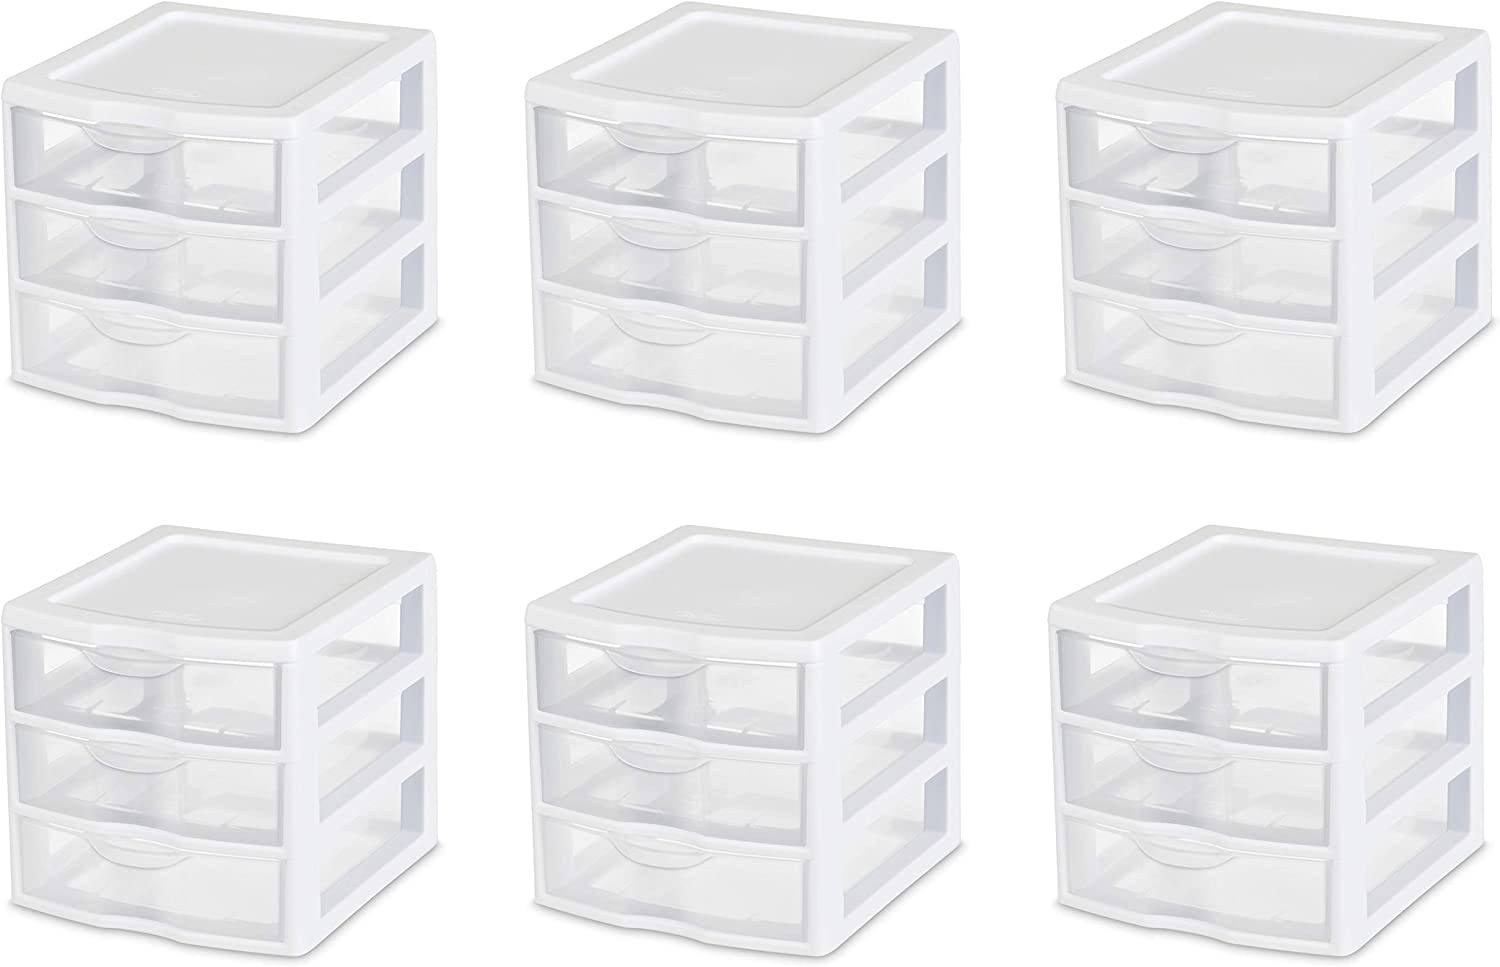 MISC Case of Max 56% OFF 6 Small Plastic Stacking Drawer Clear Units Large special price